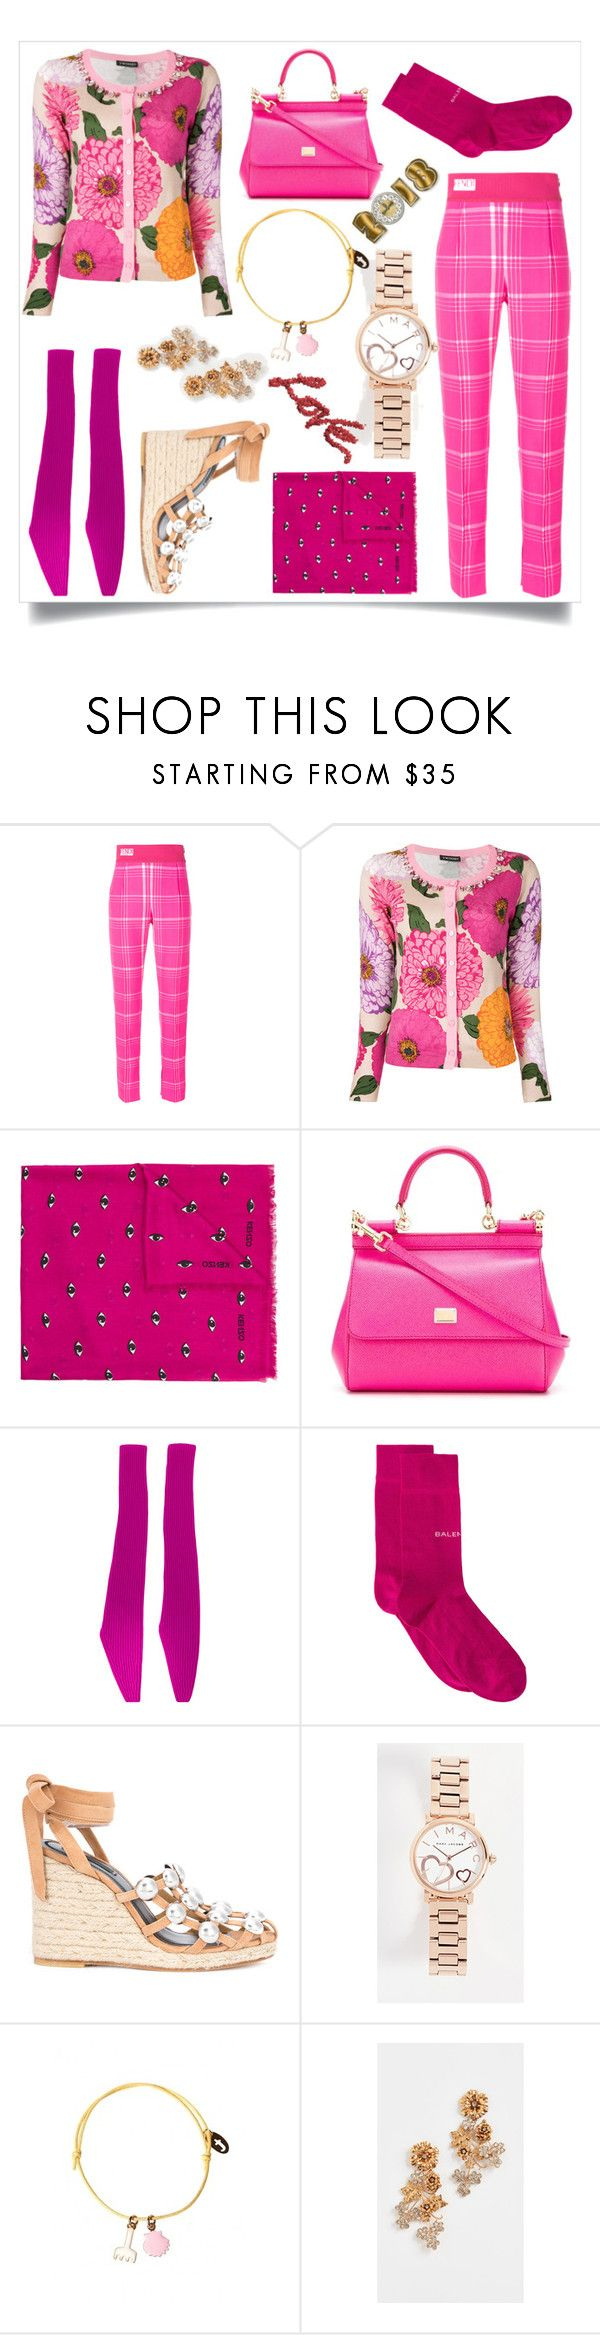 """""""Beautiful and feminine"""" by emmamegan-5678 ❤ liked on Polyvore featuring Fendi, Twinset, Kenzo, Dolce&Gabbana, Calvin Klein 205W39NYC, Balenciaga, Alexander Wang, Marc Jacobs and Jennifer Behr"""